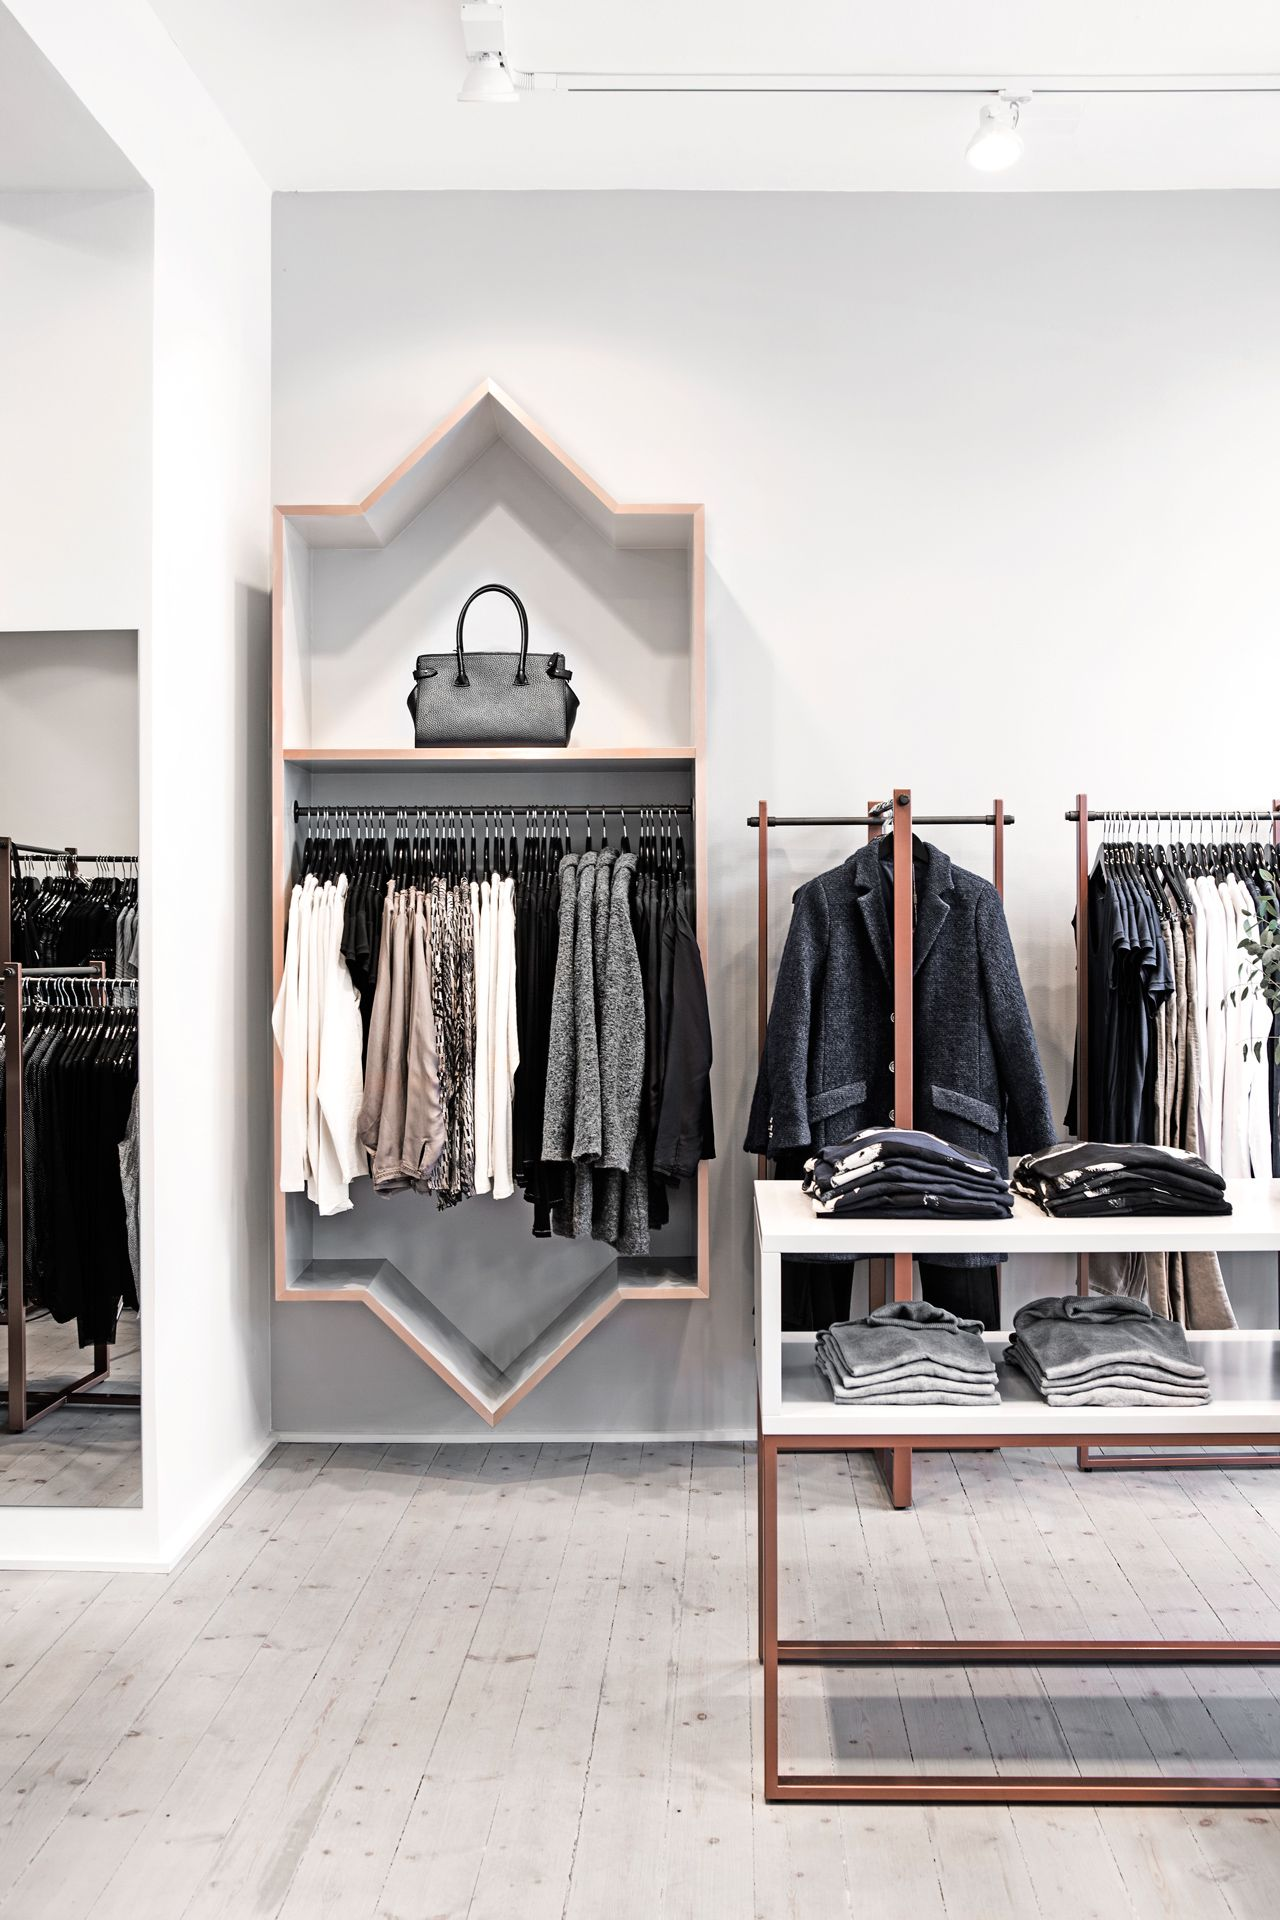 Stock Room Design: Дизайн бутика, Дизайн магазина